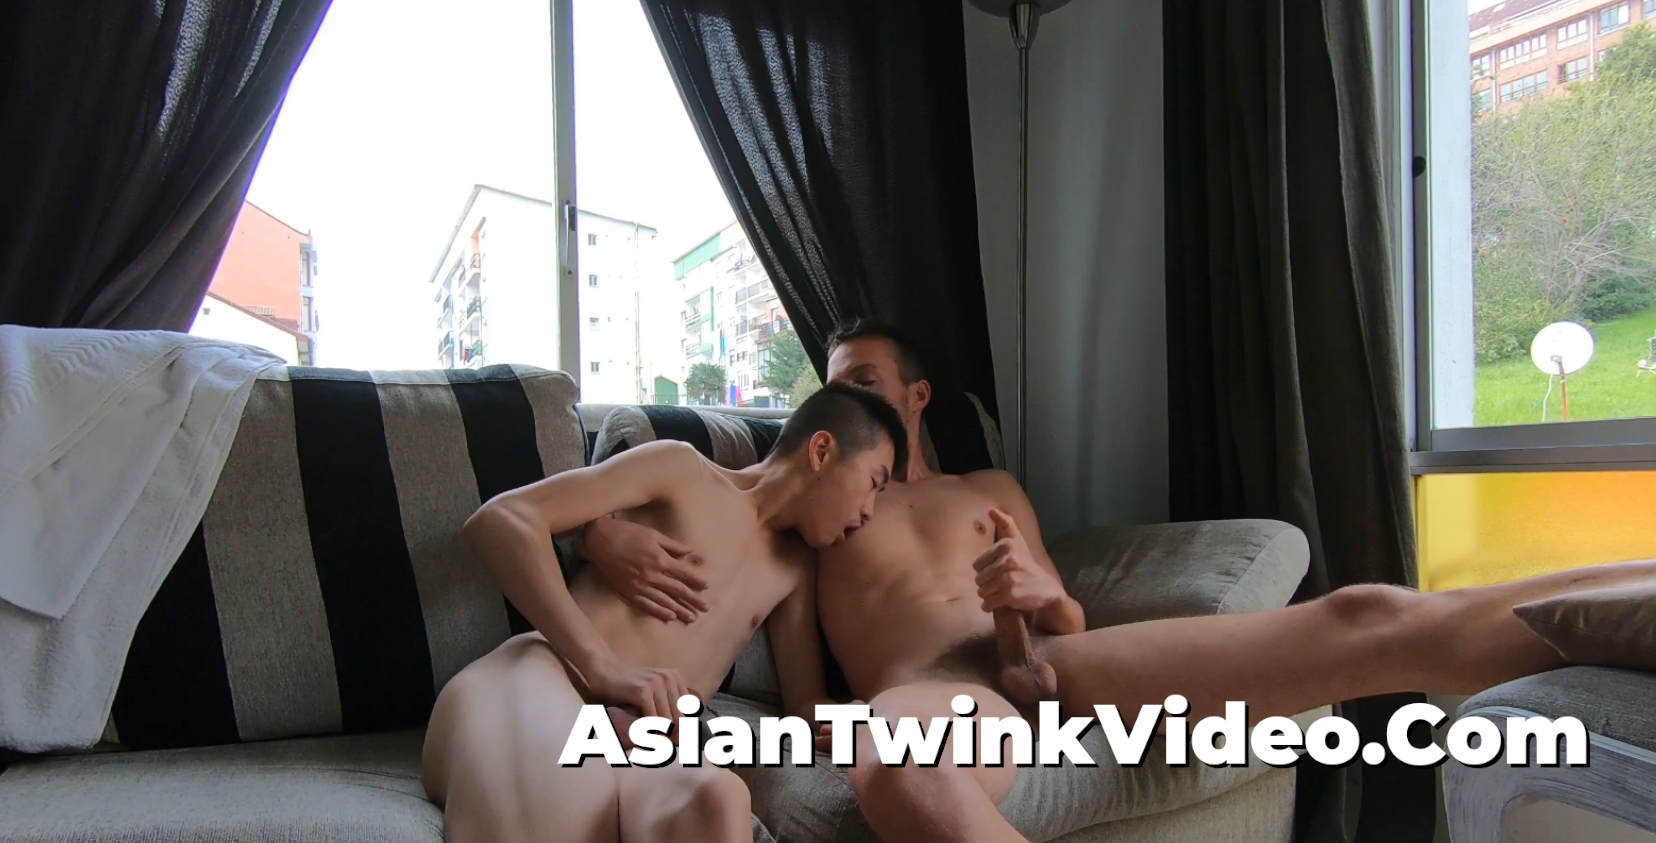 Asian-White Gay Couple Giving Each Other a Hand